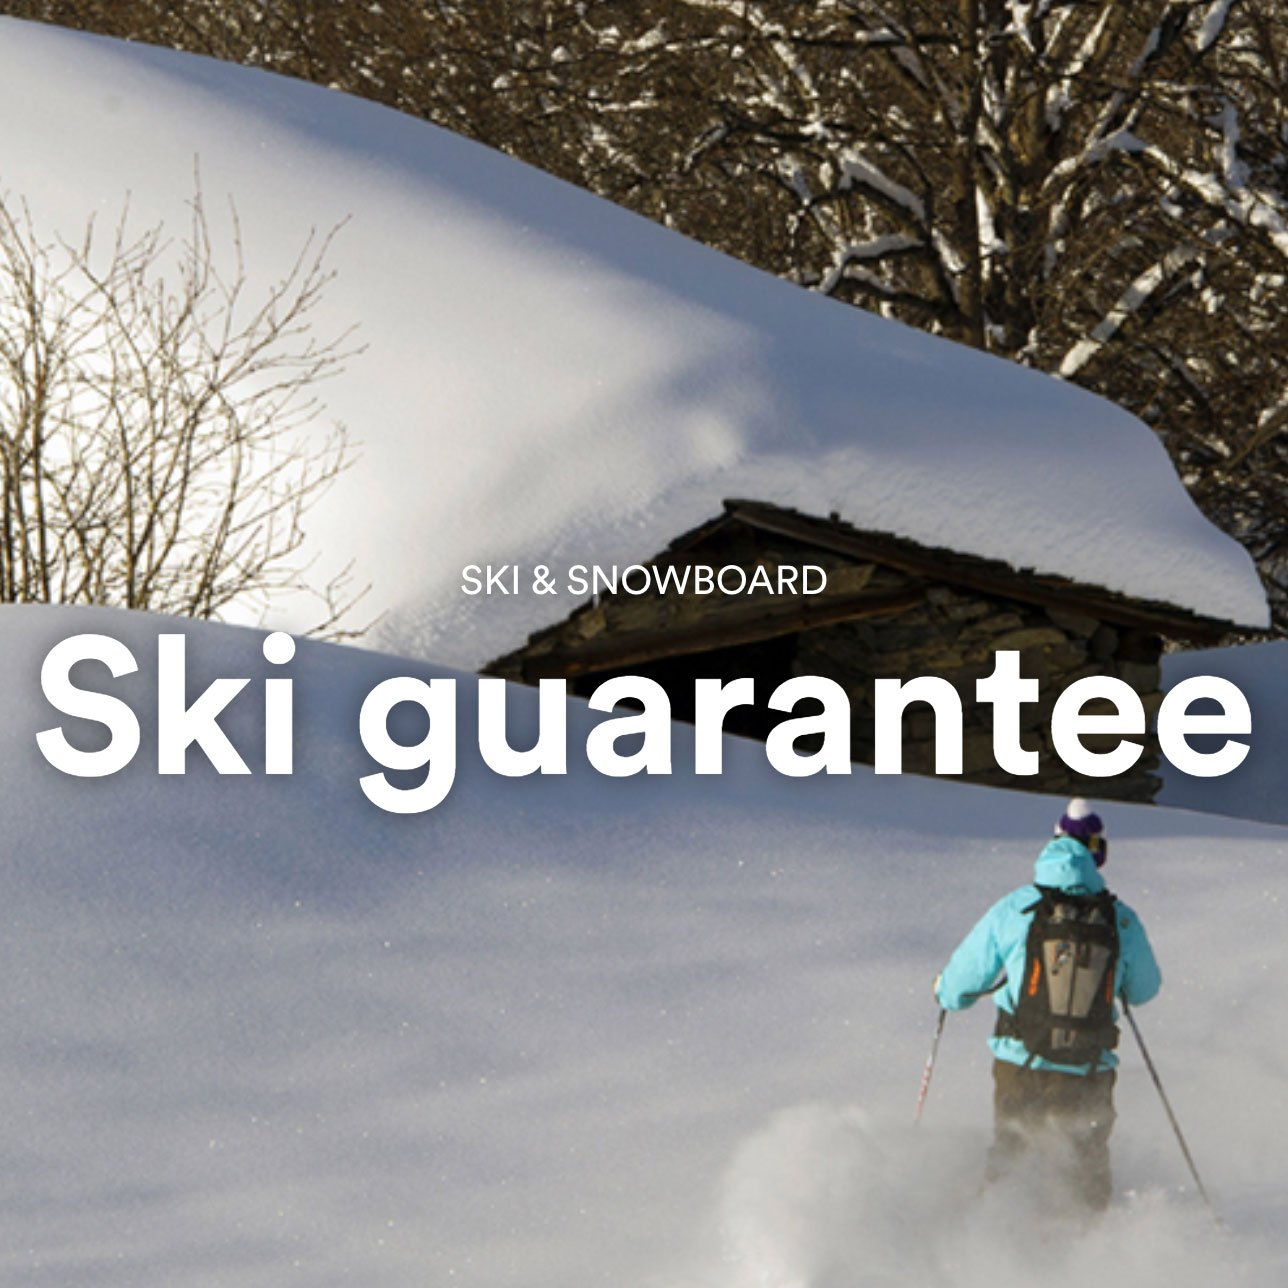 Ski guarantee – 3 Valleys